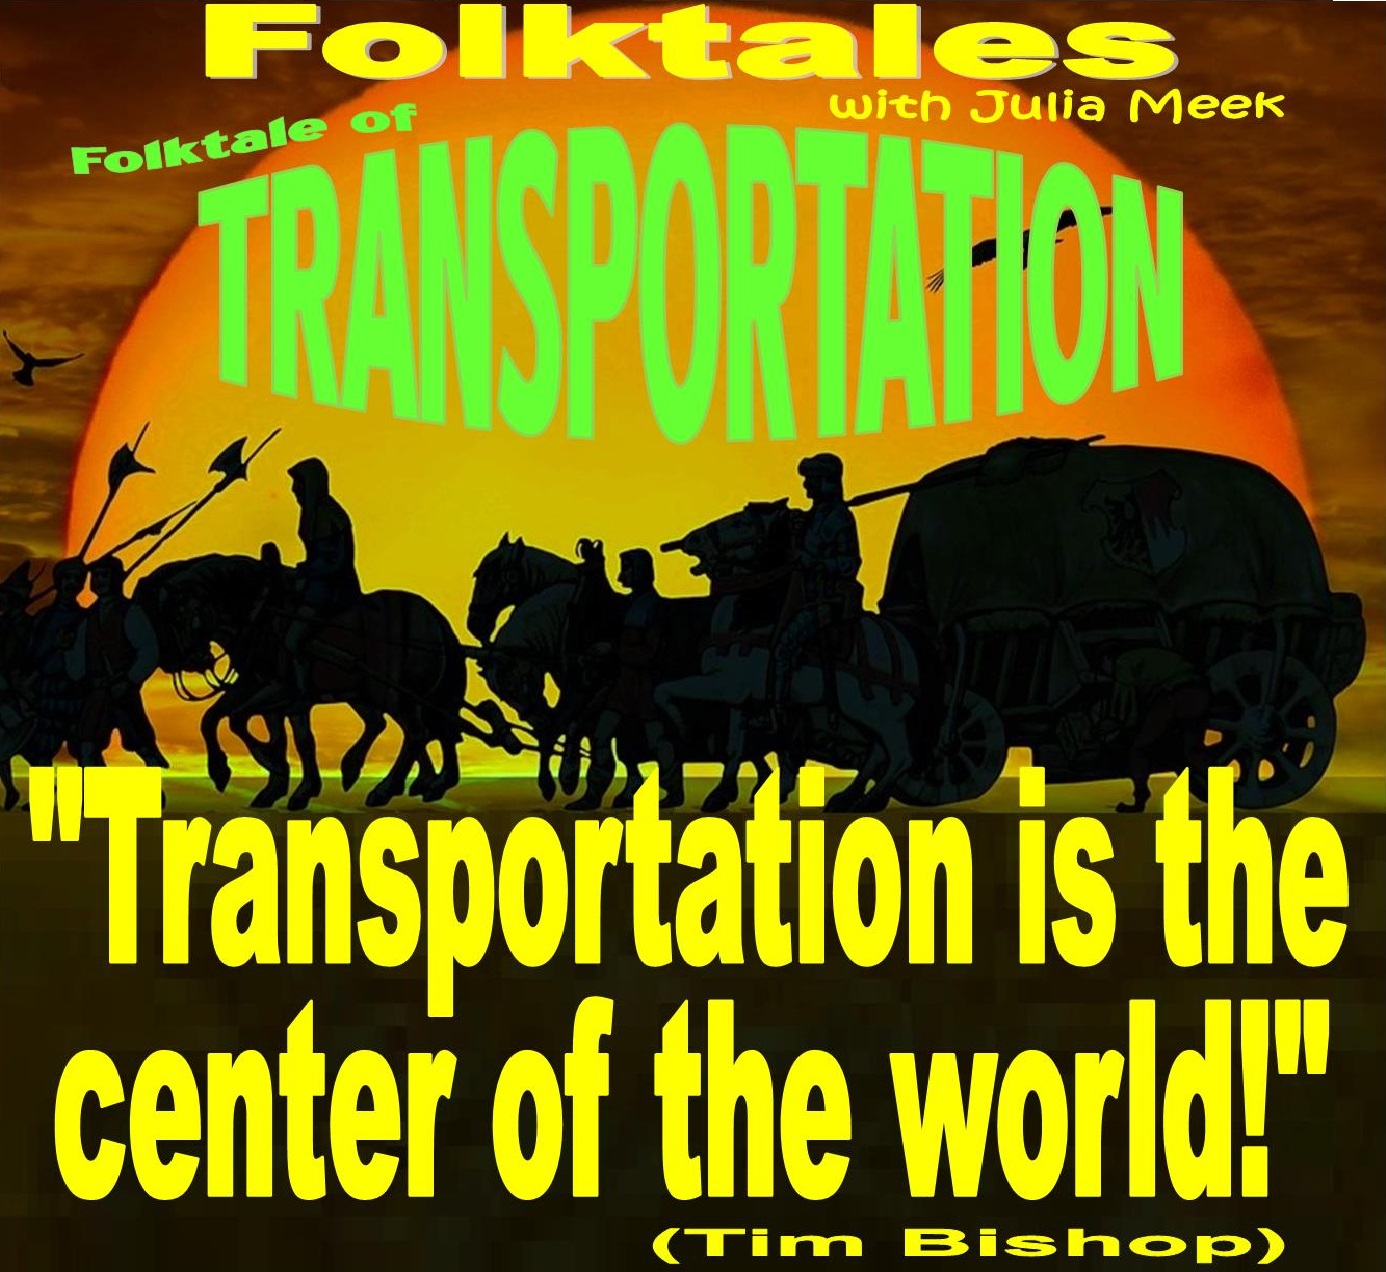 Ft_weekly-prx___fb_transportation_verse_small